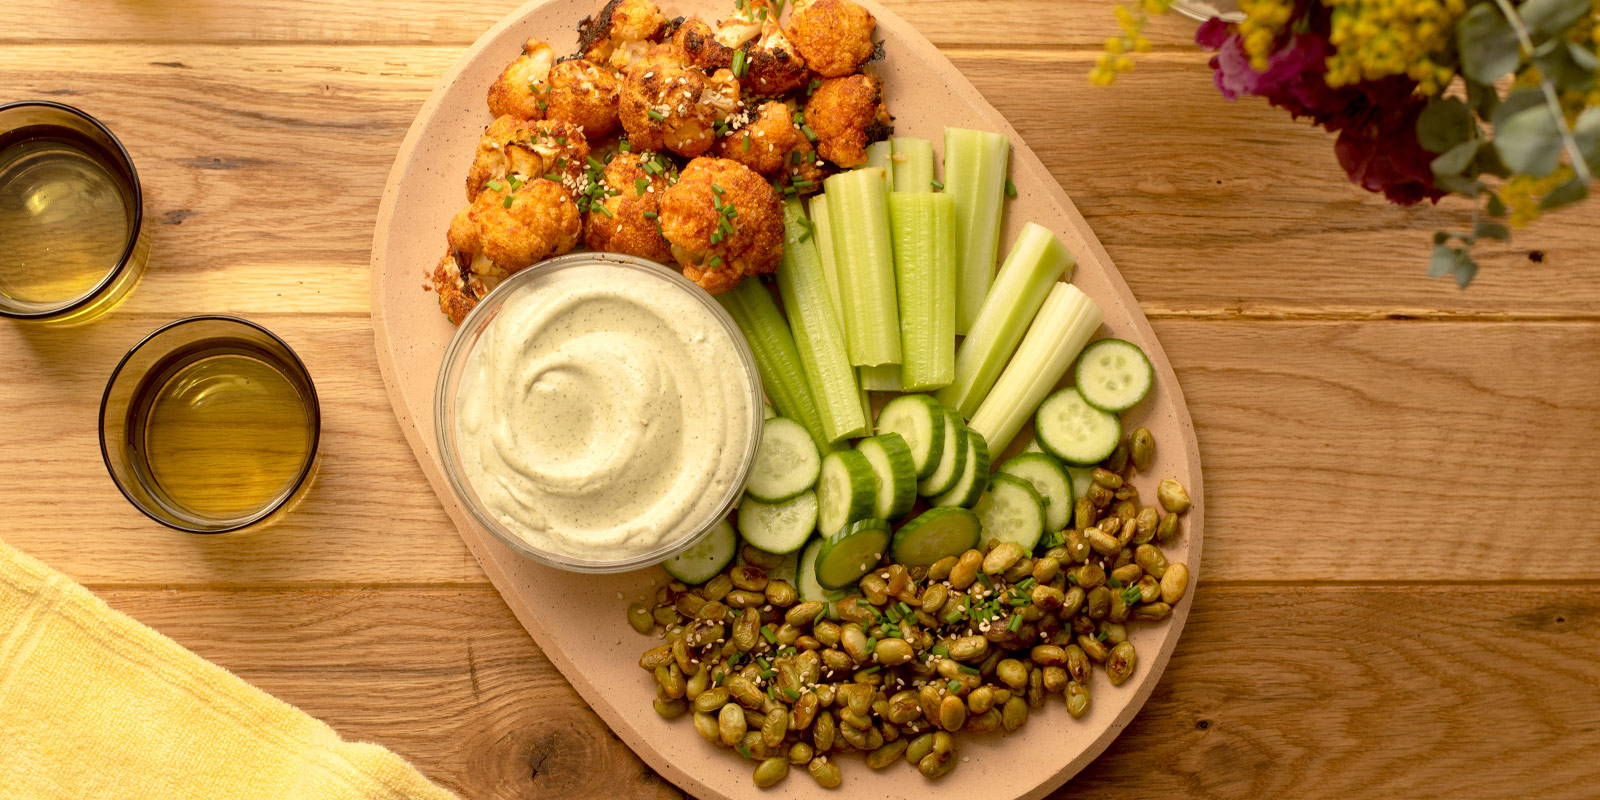 Appetizer platter featuring Cauliflower wings, BBQ edamame, celery, cucumbers, olive oil, and cashew ranch dip.